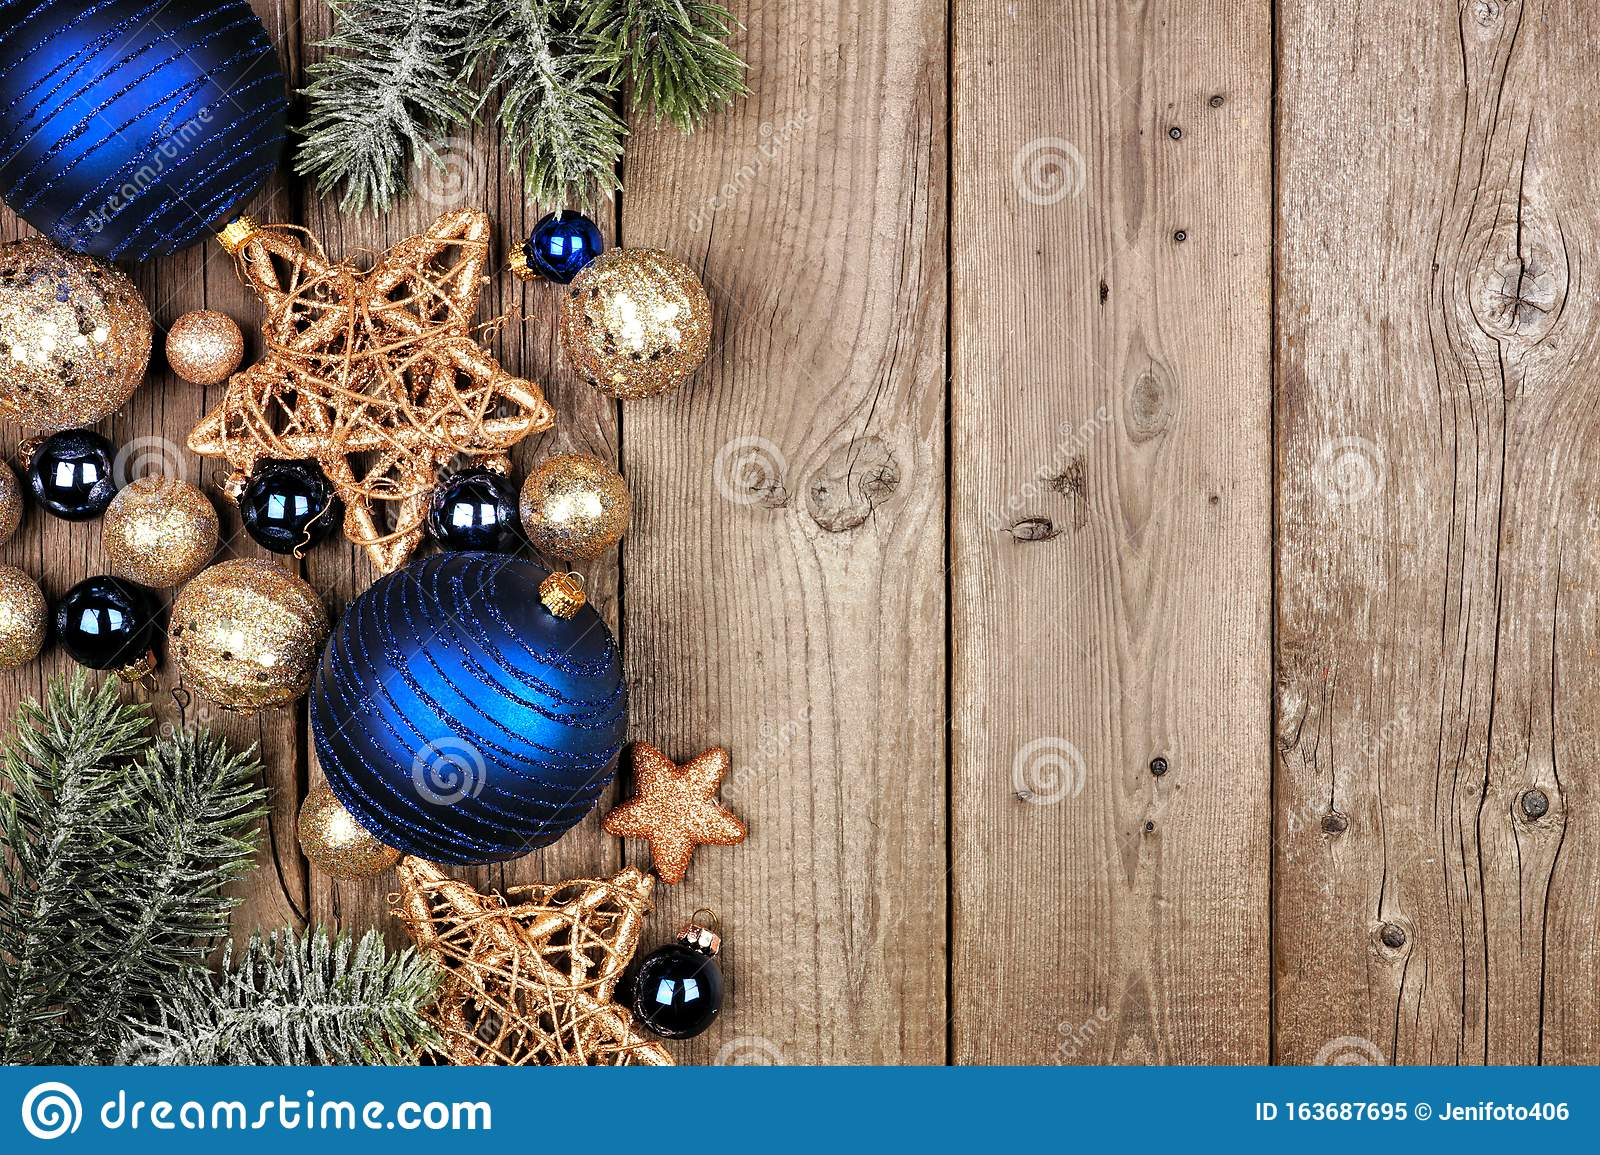 Christmas Side Border With Dark Blue And Gold Ornaments And Tree Branches Top View On A Wood Background Stock Image Image Of Navy Decor 163687695